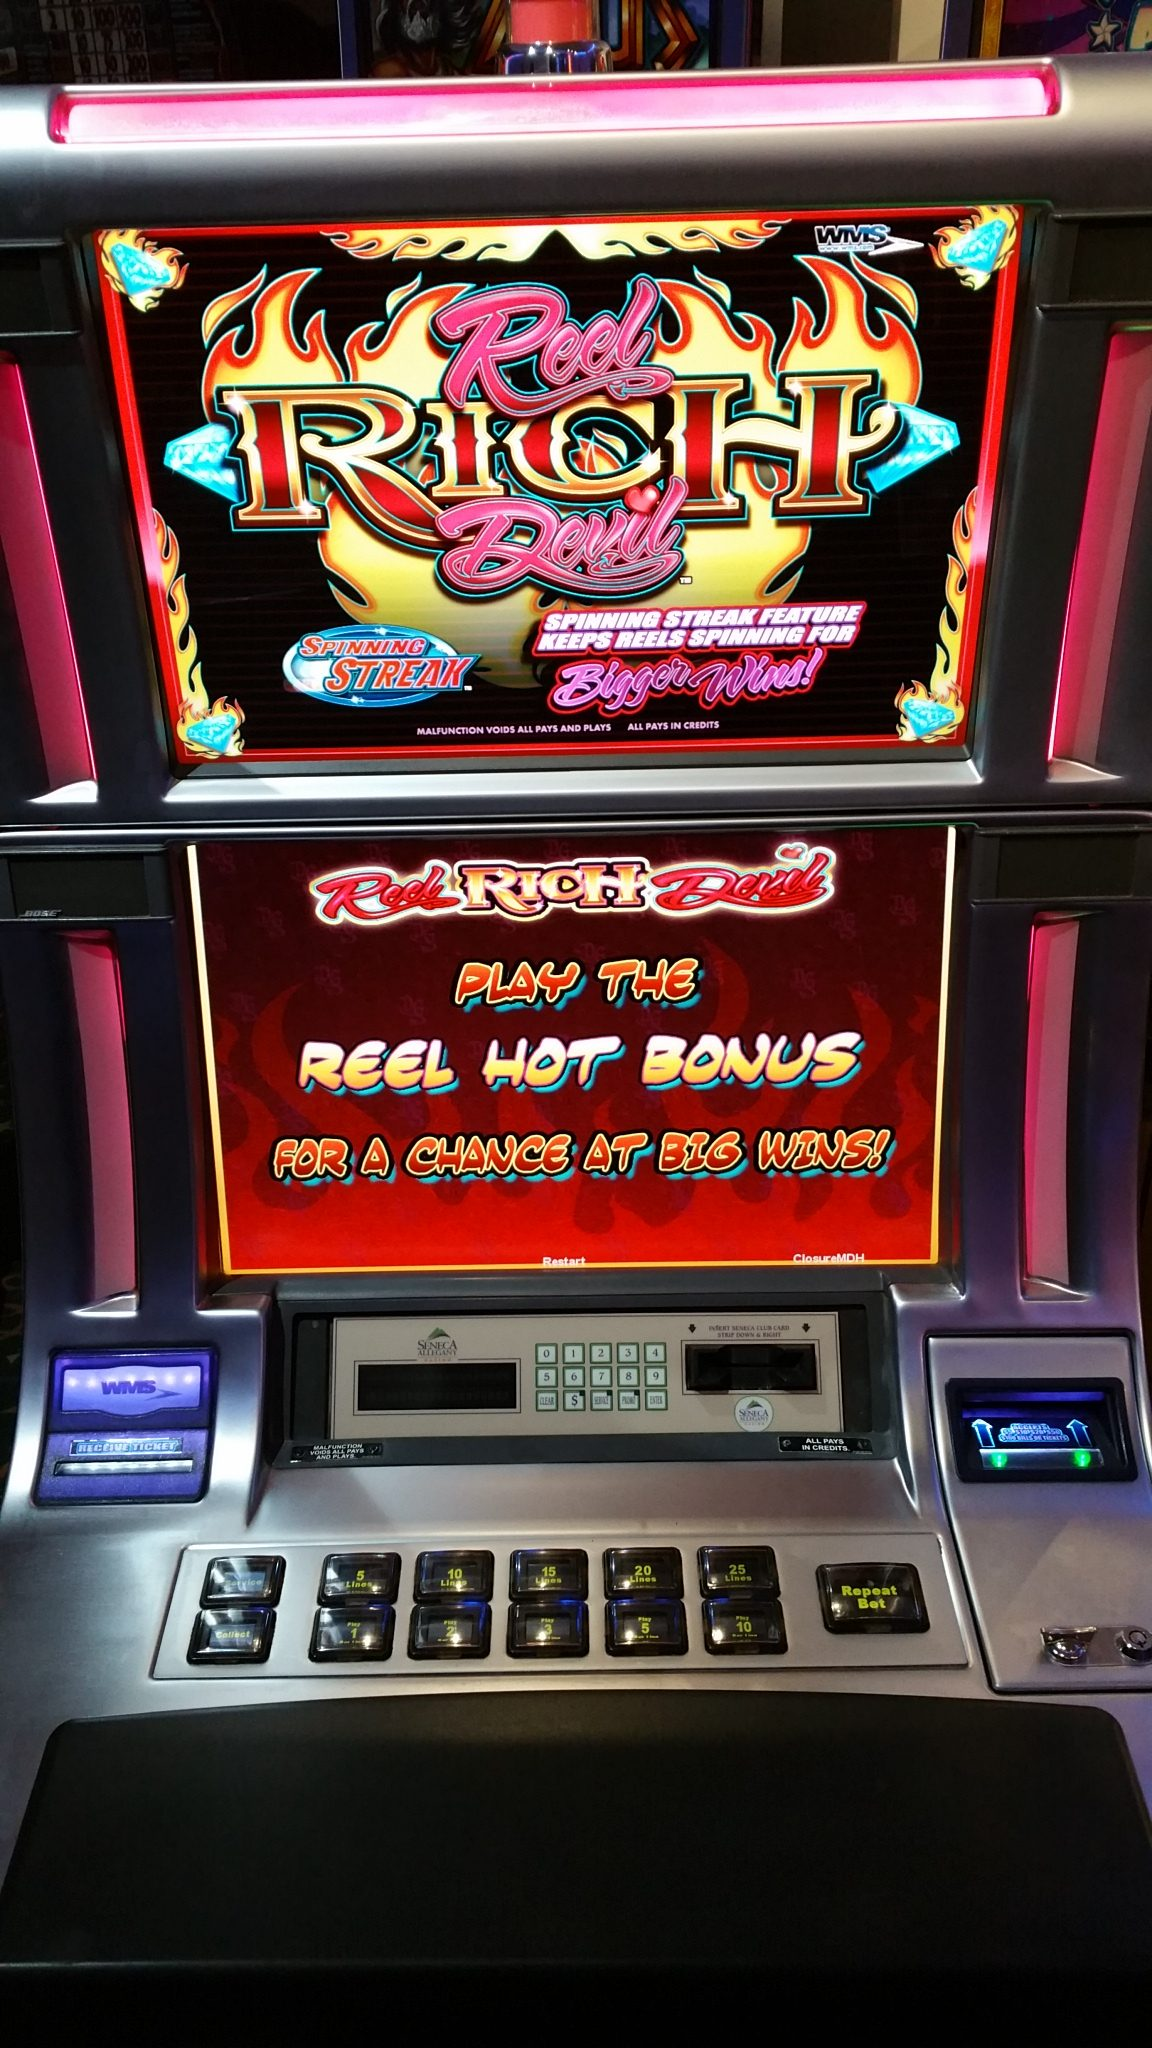 Spinning streak slot machines by wms gaming baccarat super 6 rules